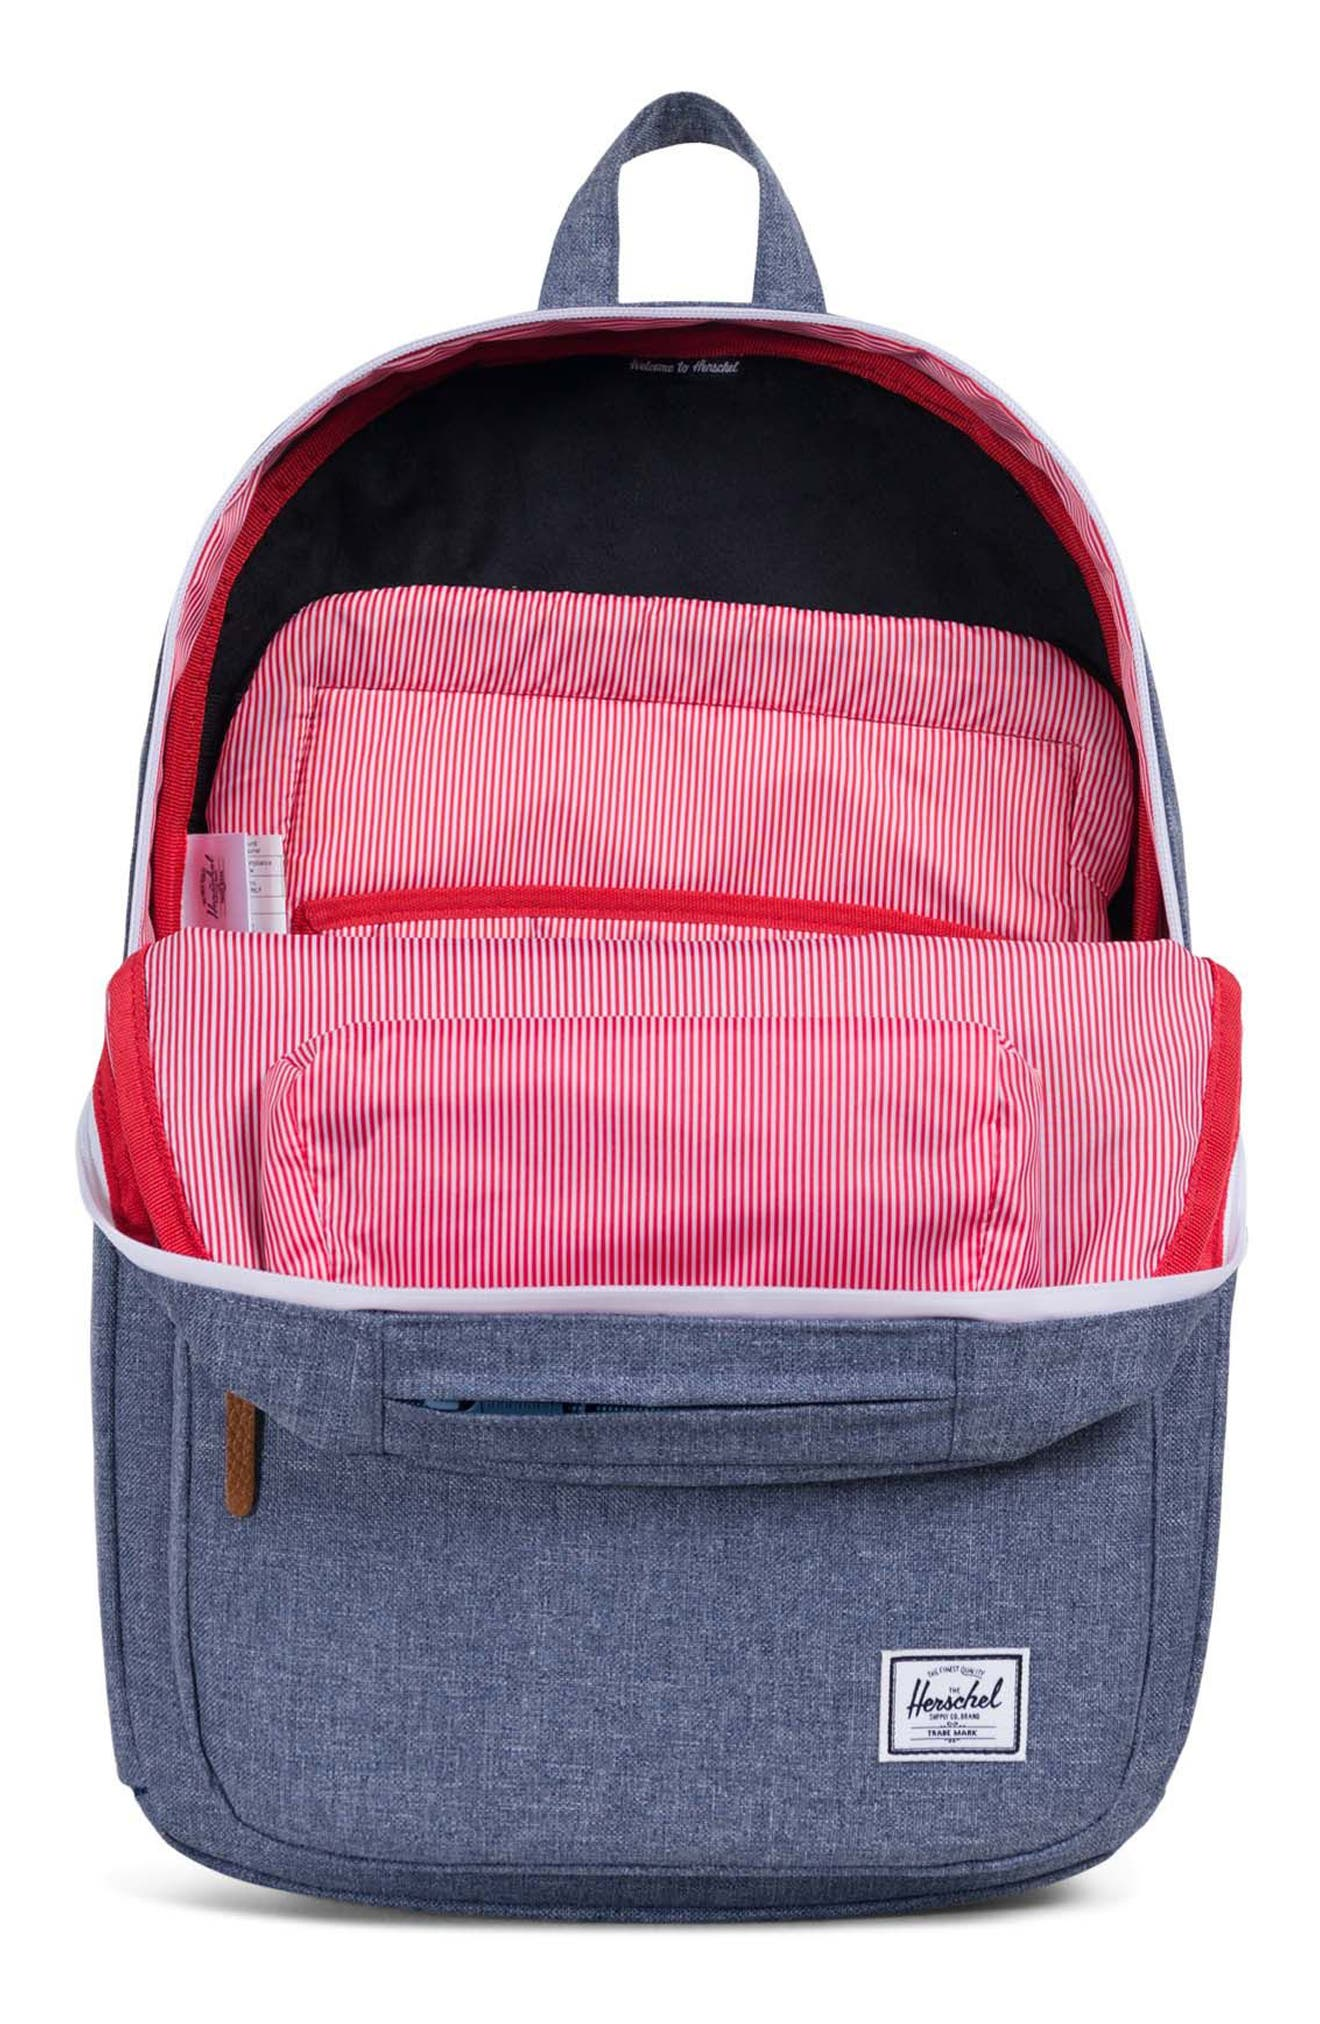 Harrison Backpack,                             Alternate thumbnail 3, color,                             Dark Chambray Crosshatch